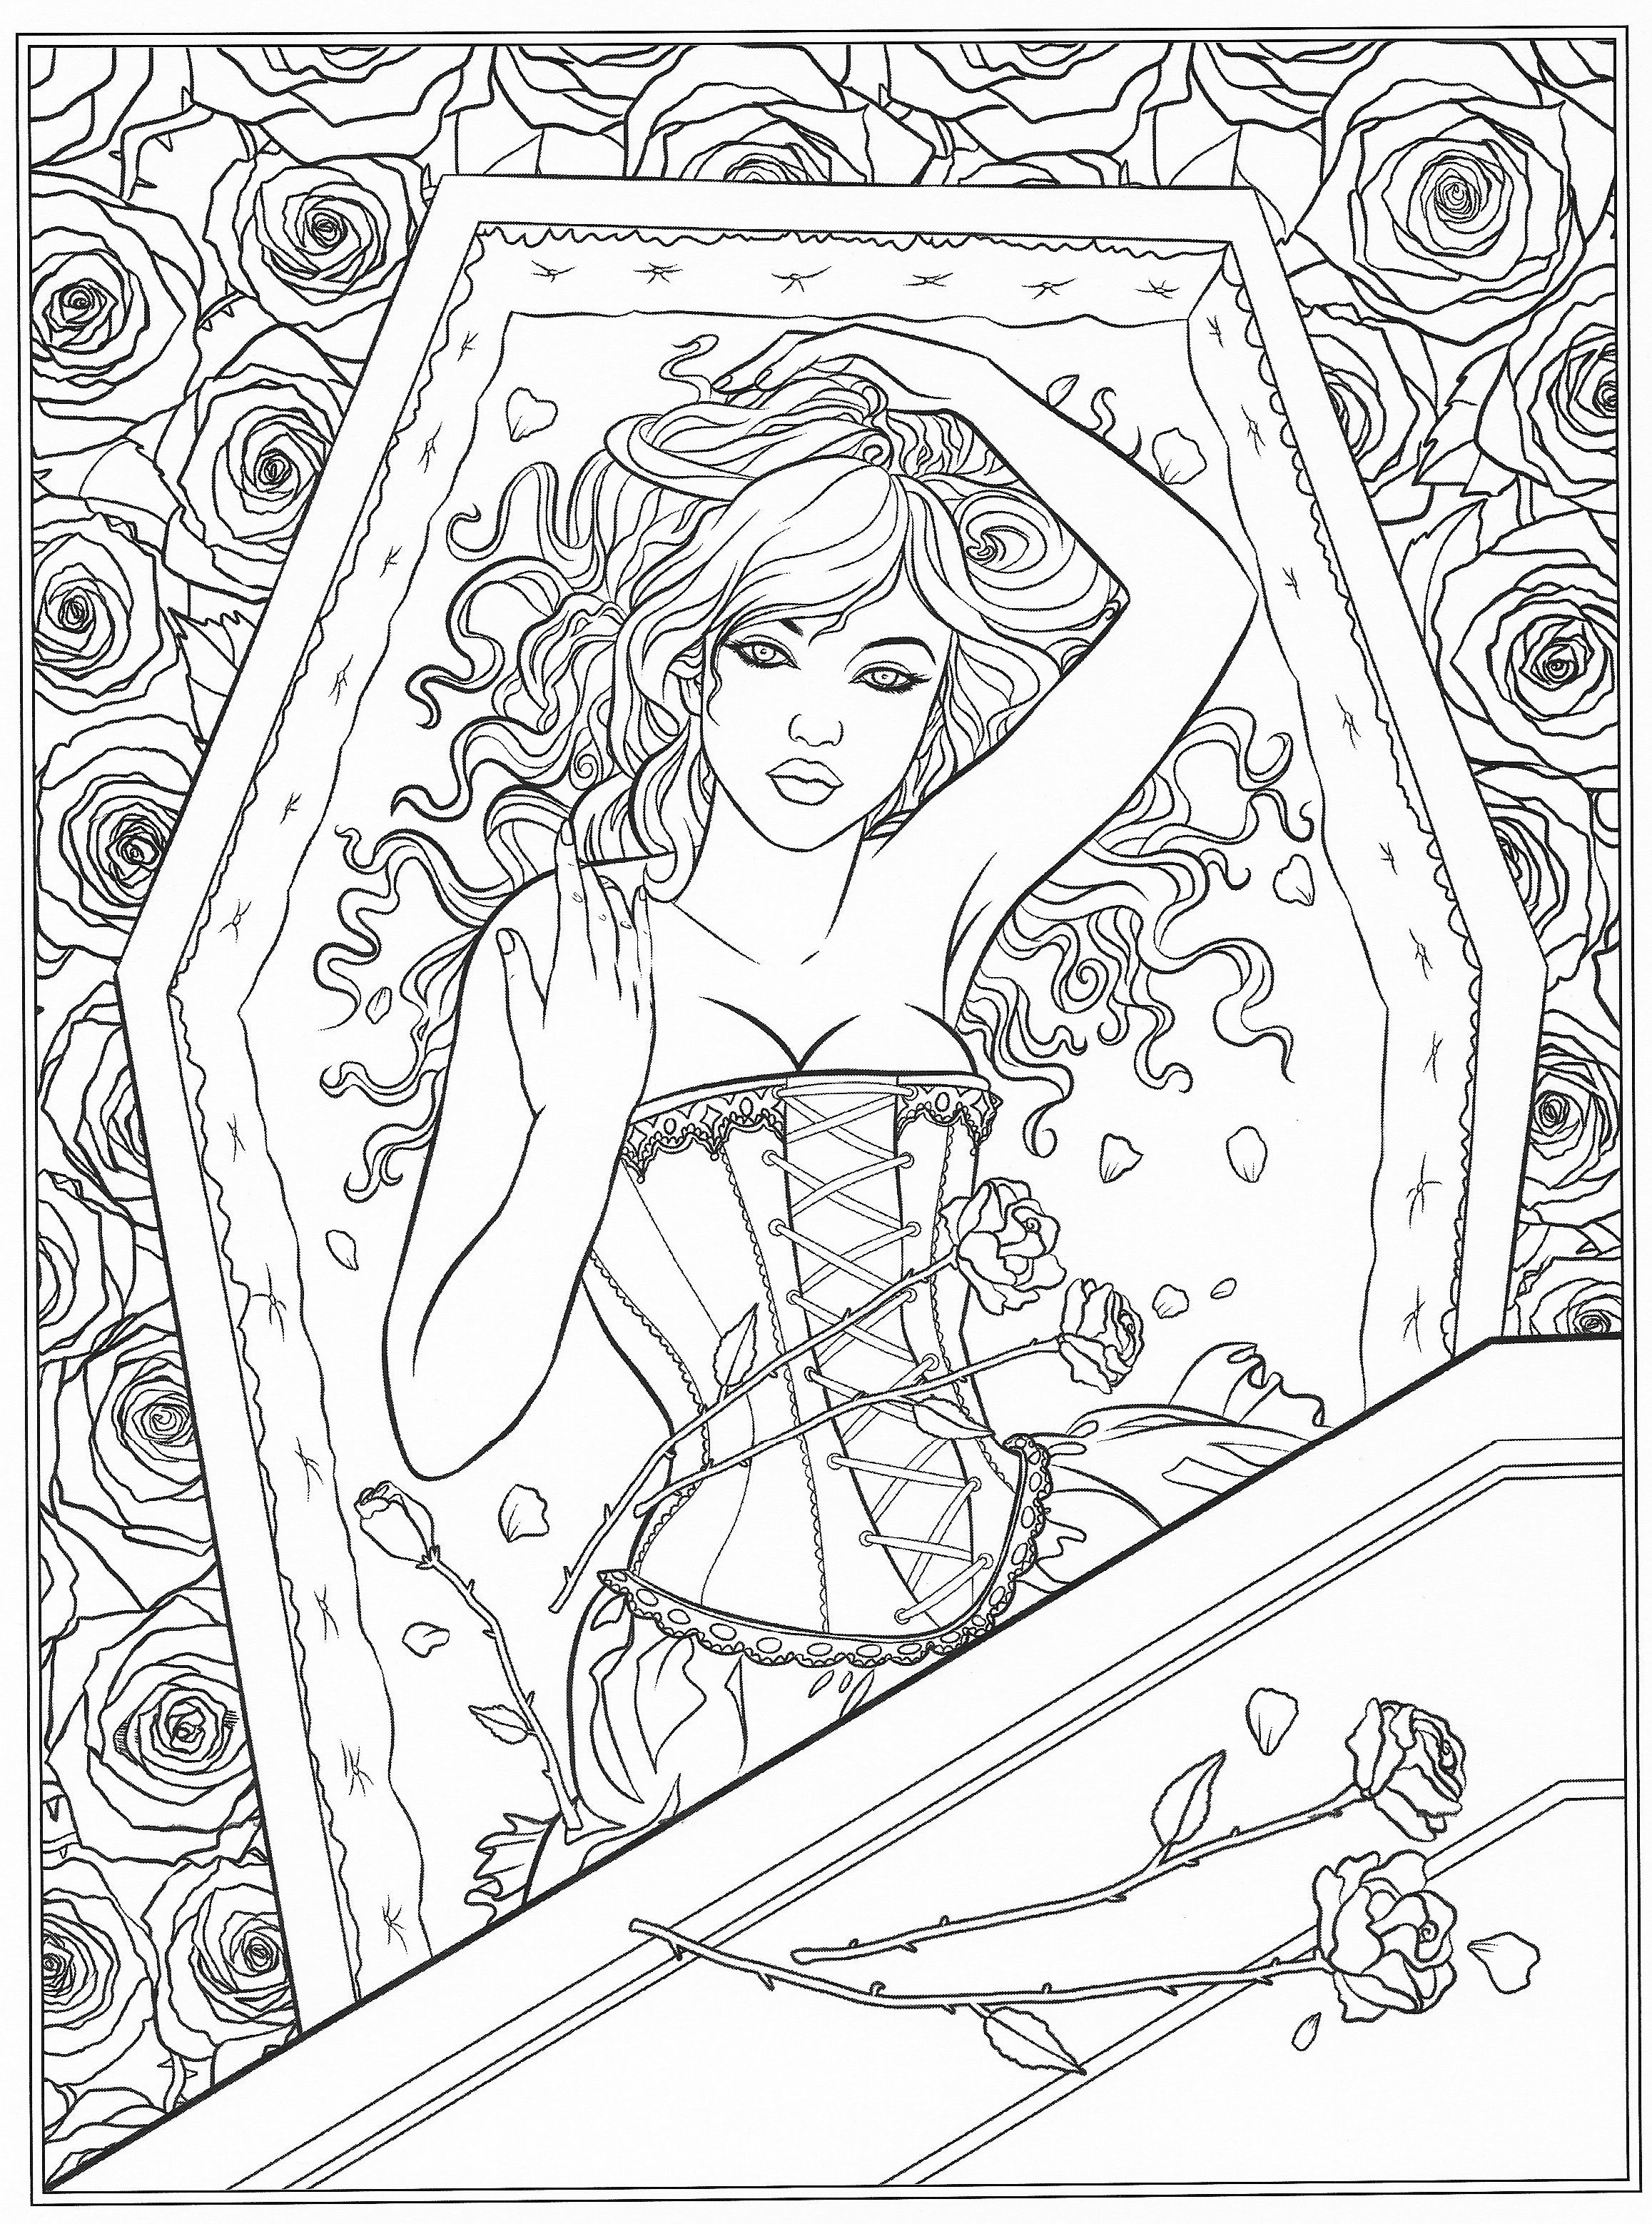 Pin On Black And White Linework 3